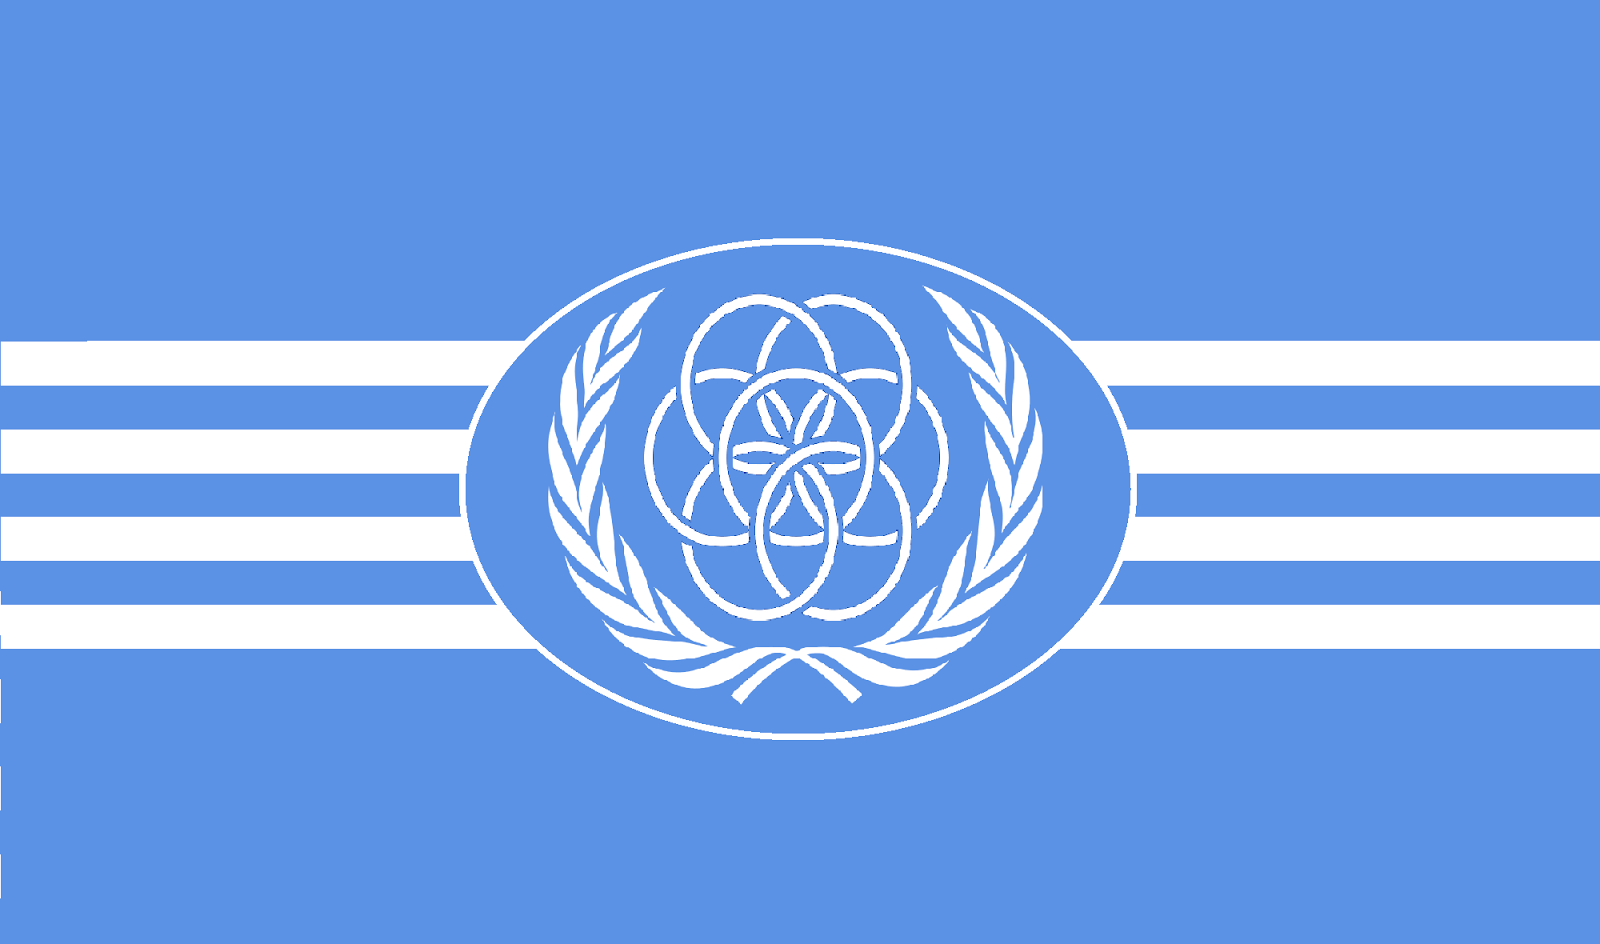 the united nations The united nations member states are the 193 sovereign states that are members of the united nations (un) and have equal representation in the un general assembly the un is the world's largest intergovernmental organization the criteria for admission of new members to the un are set out in chapter ii, article 4 of the un charter.